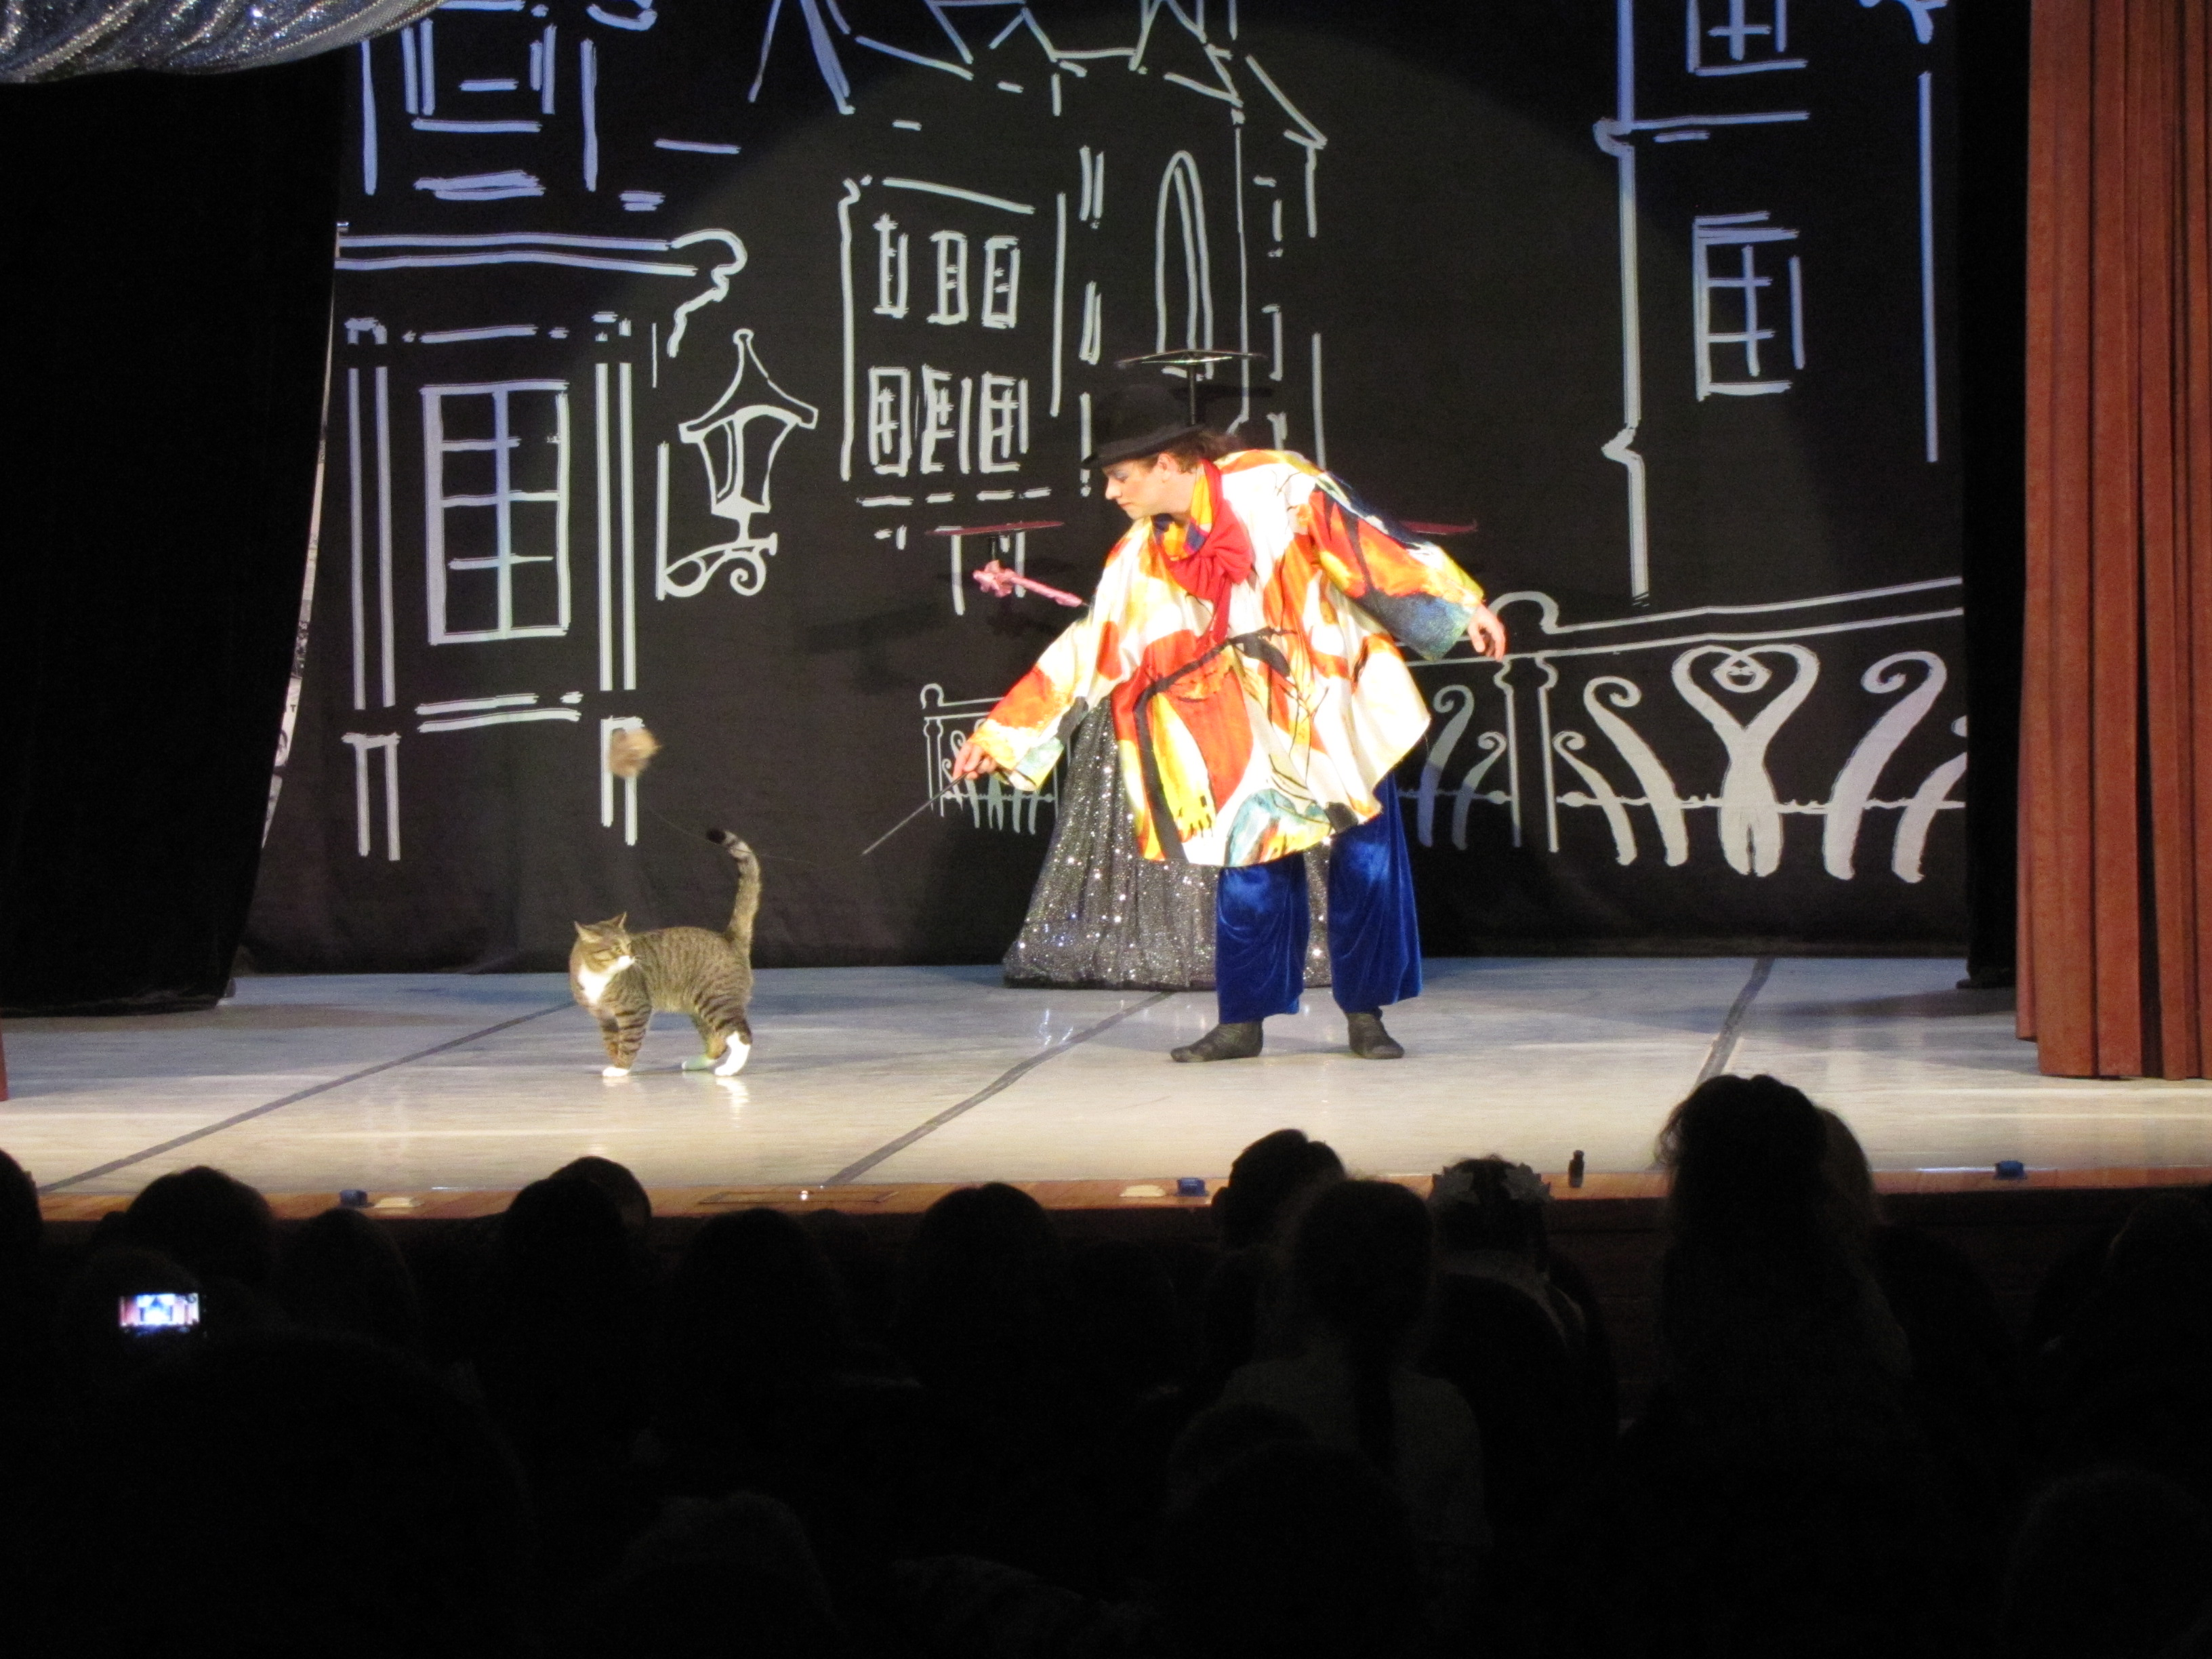 Moscow circus, nightlife, bars and hipsters